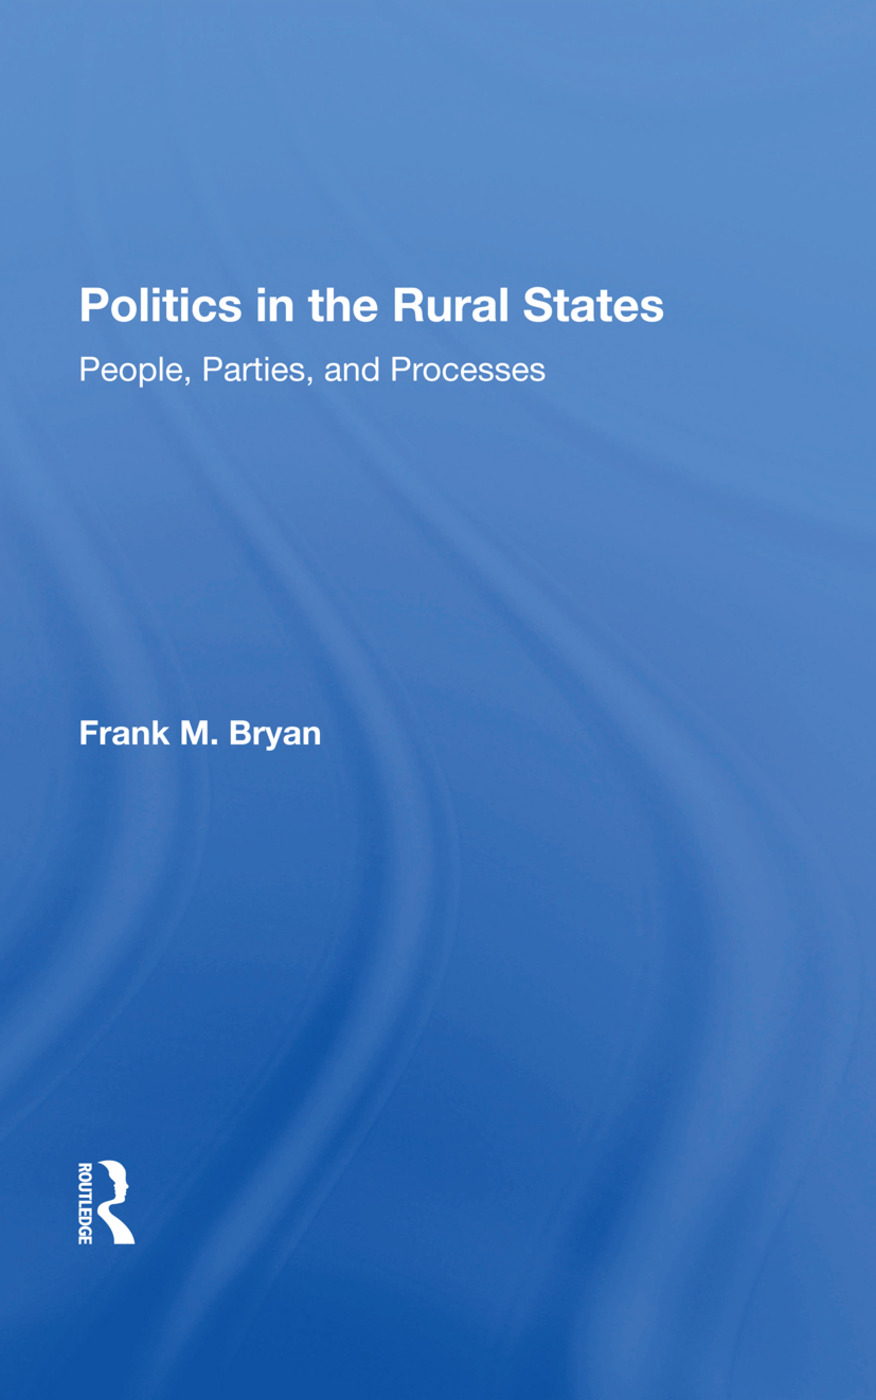 Politics in the Rural States